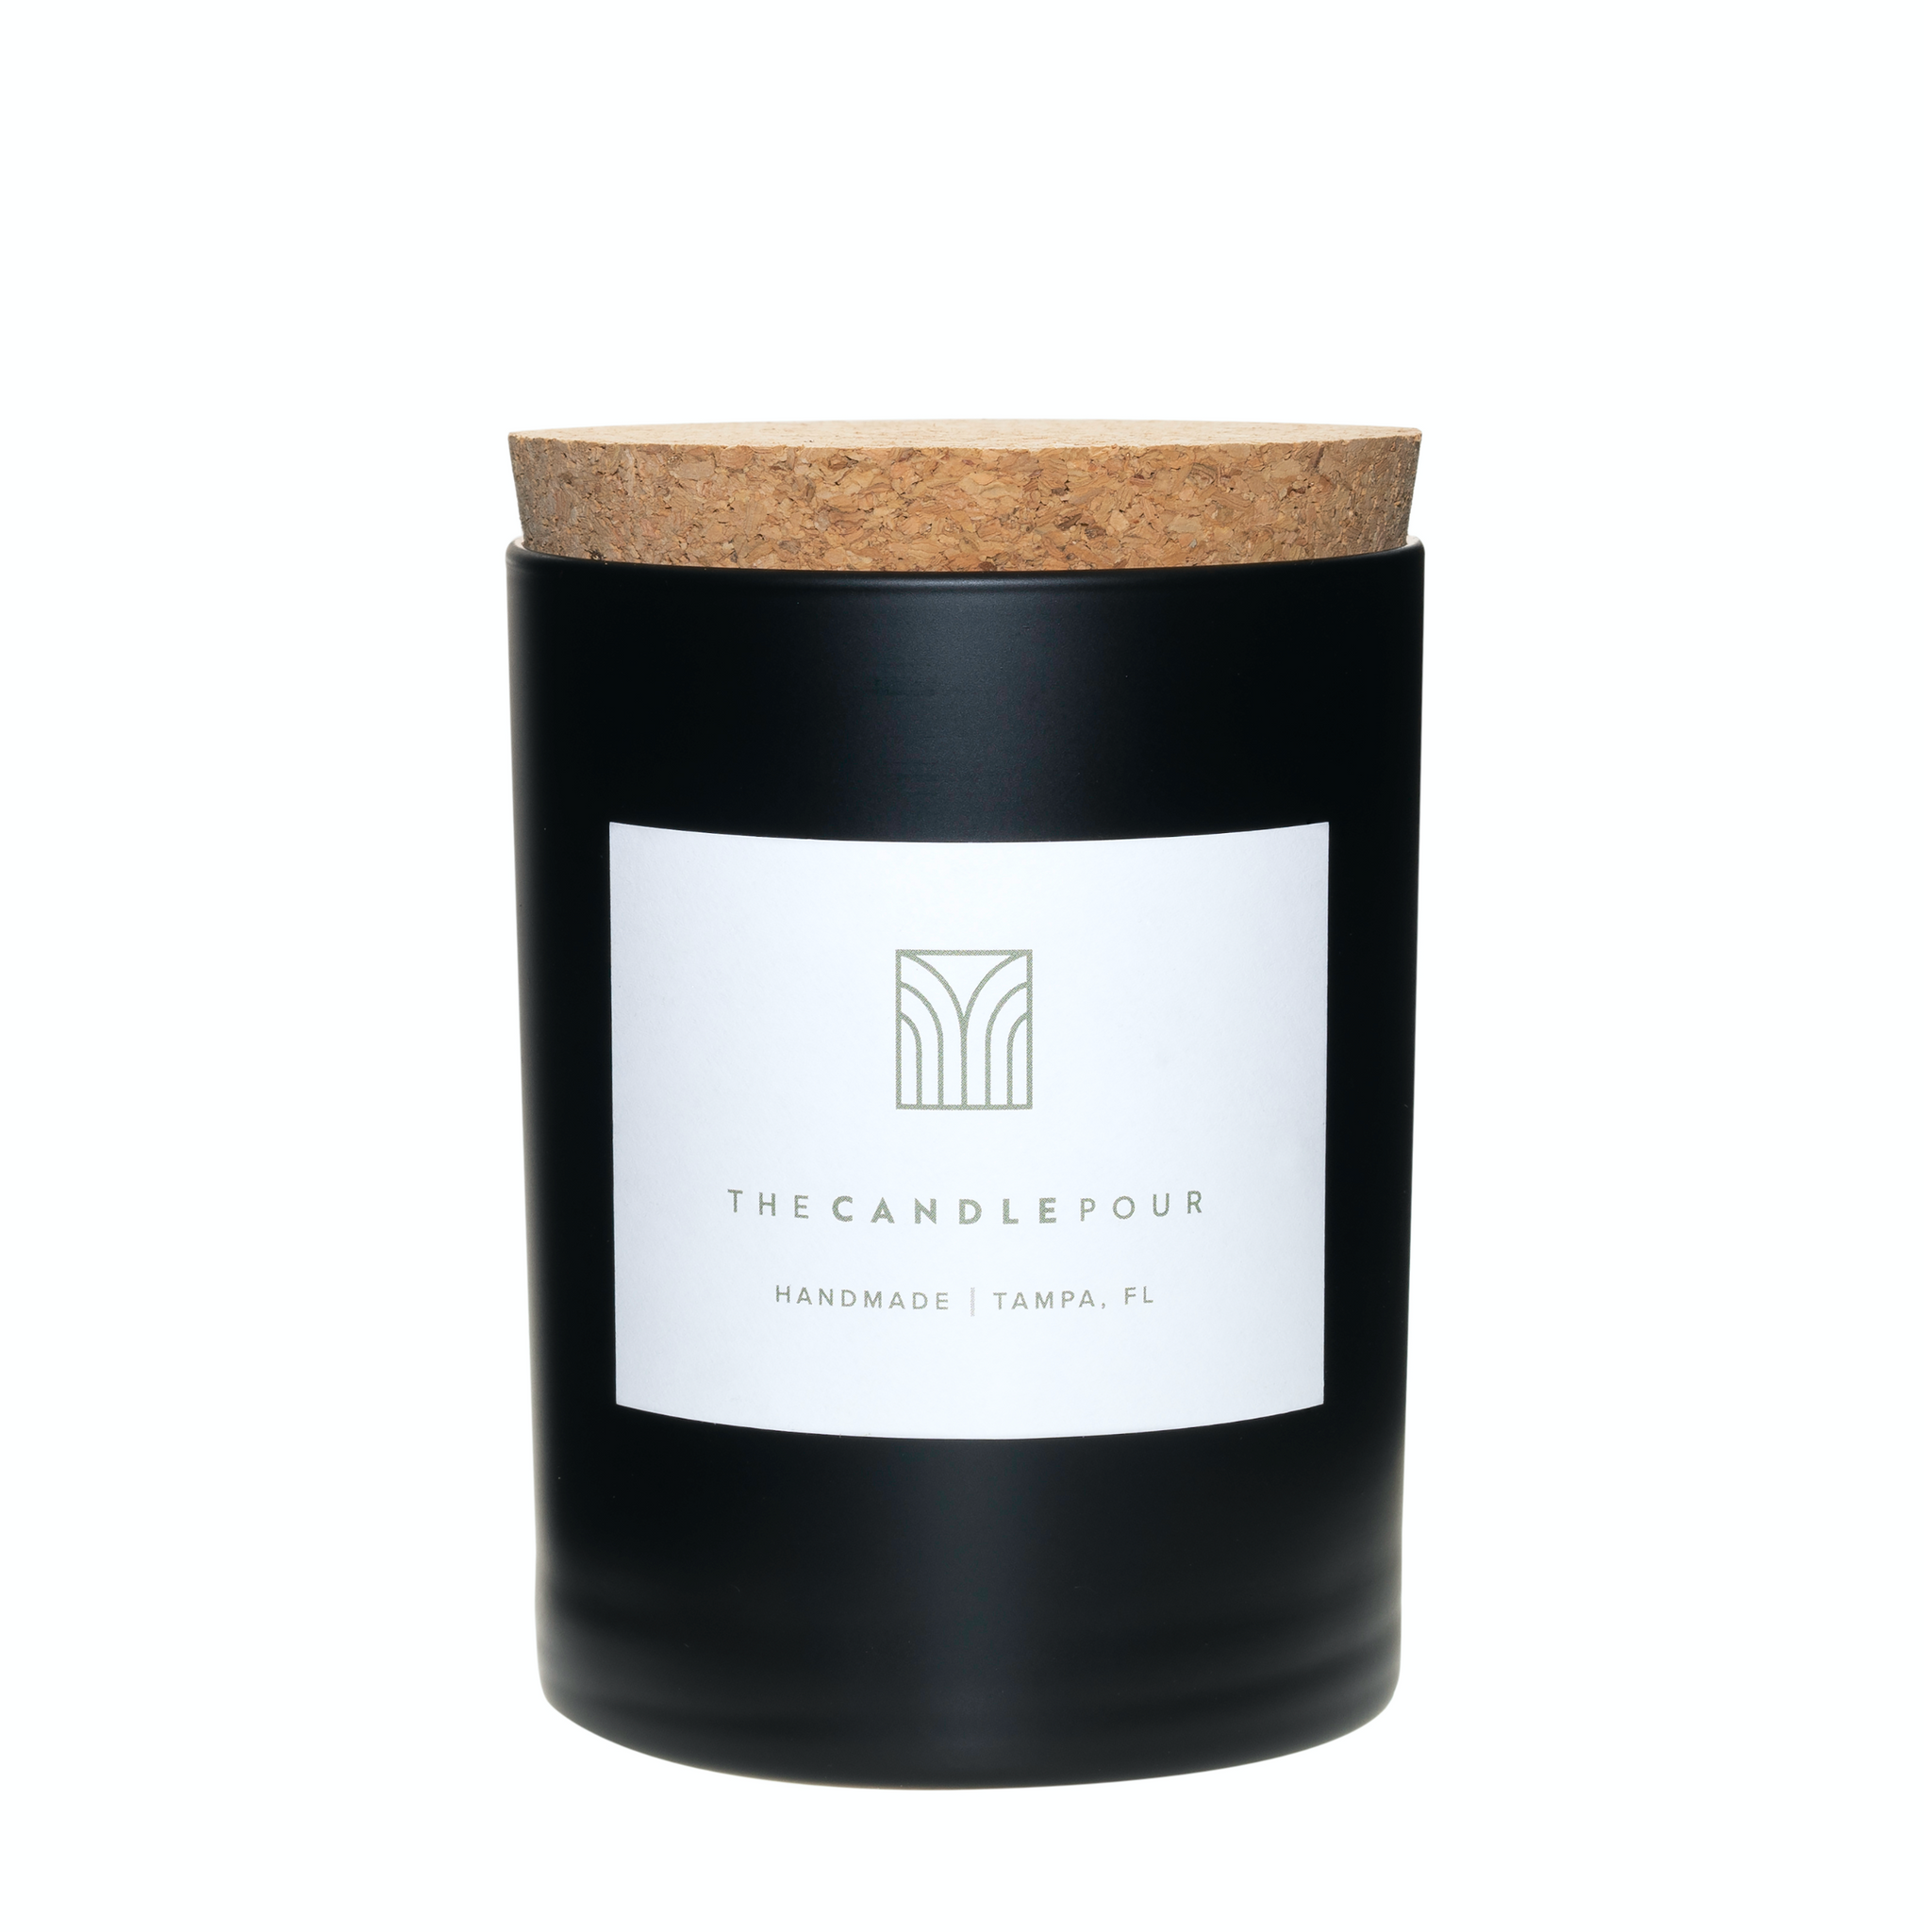 12 Ounce Soy Candle